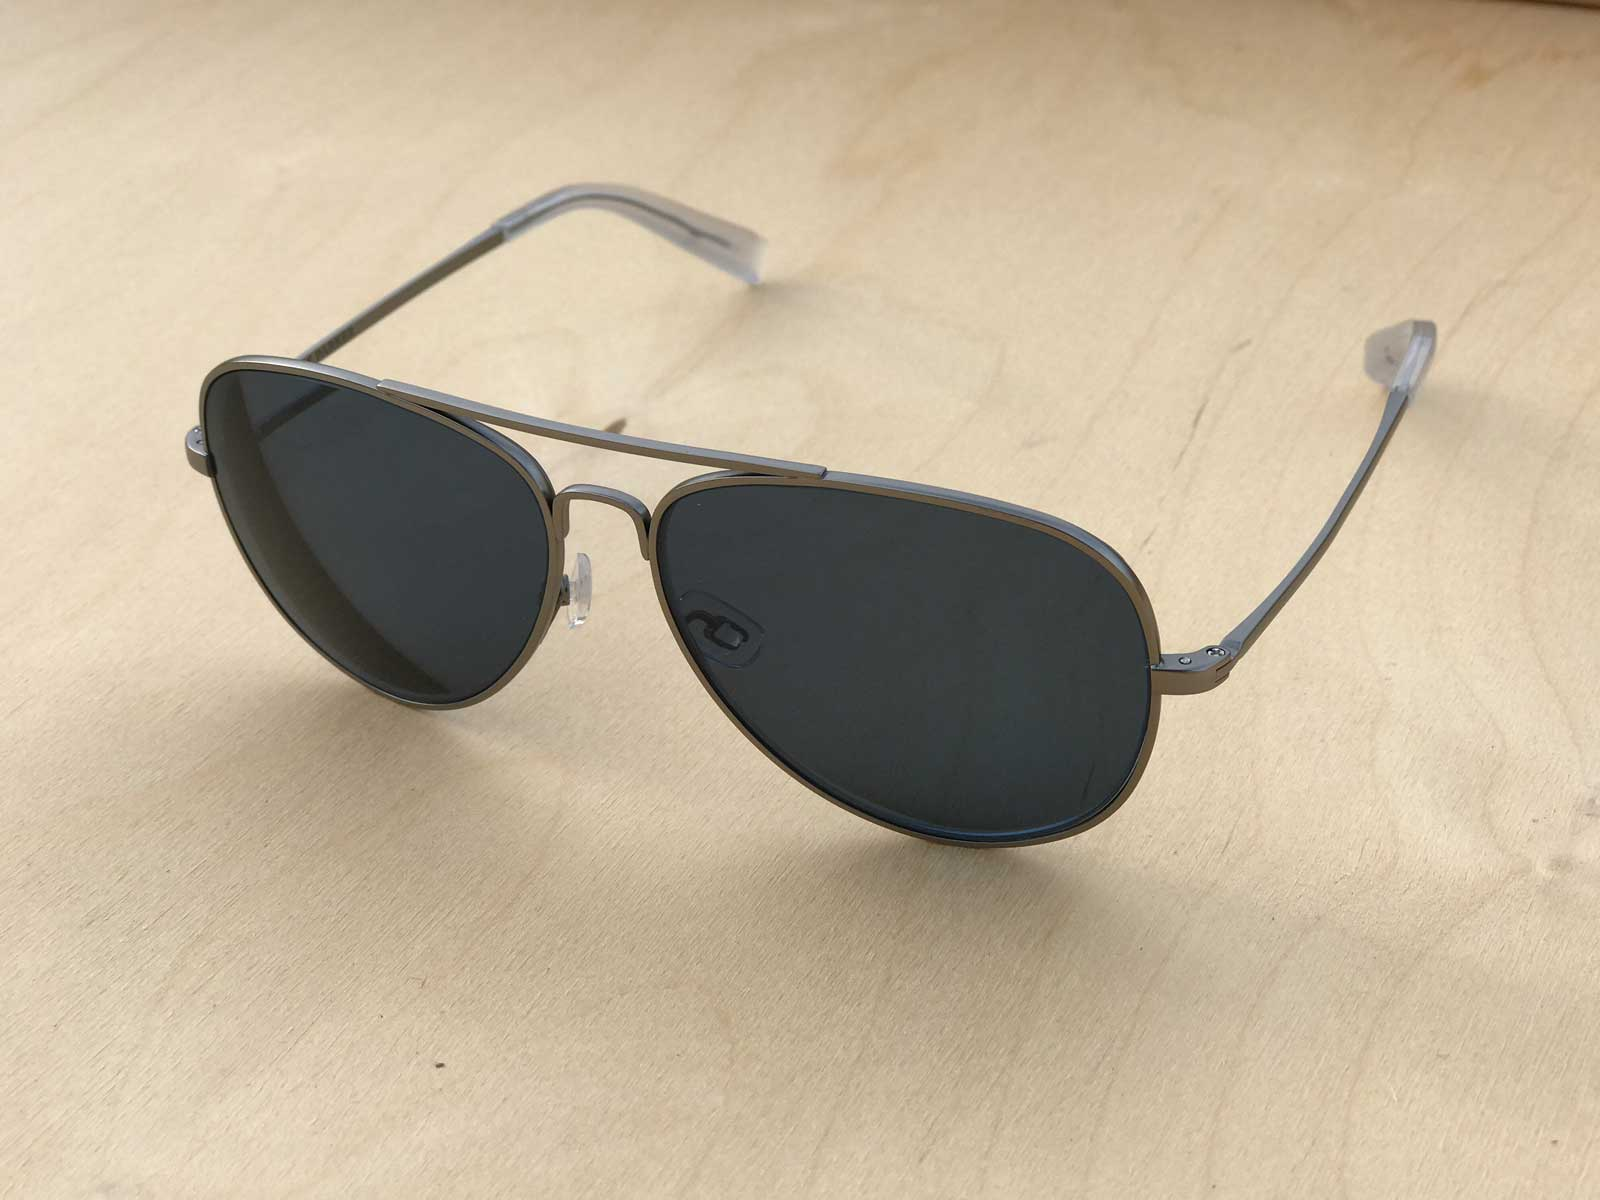 Warby Parker Sunglasses 01